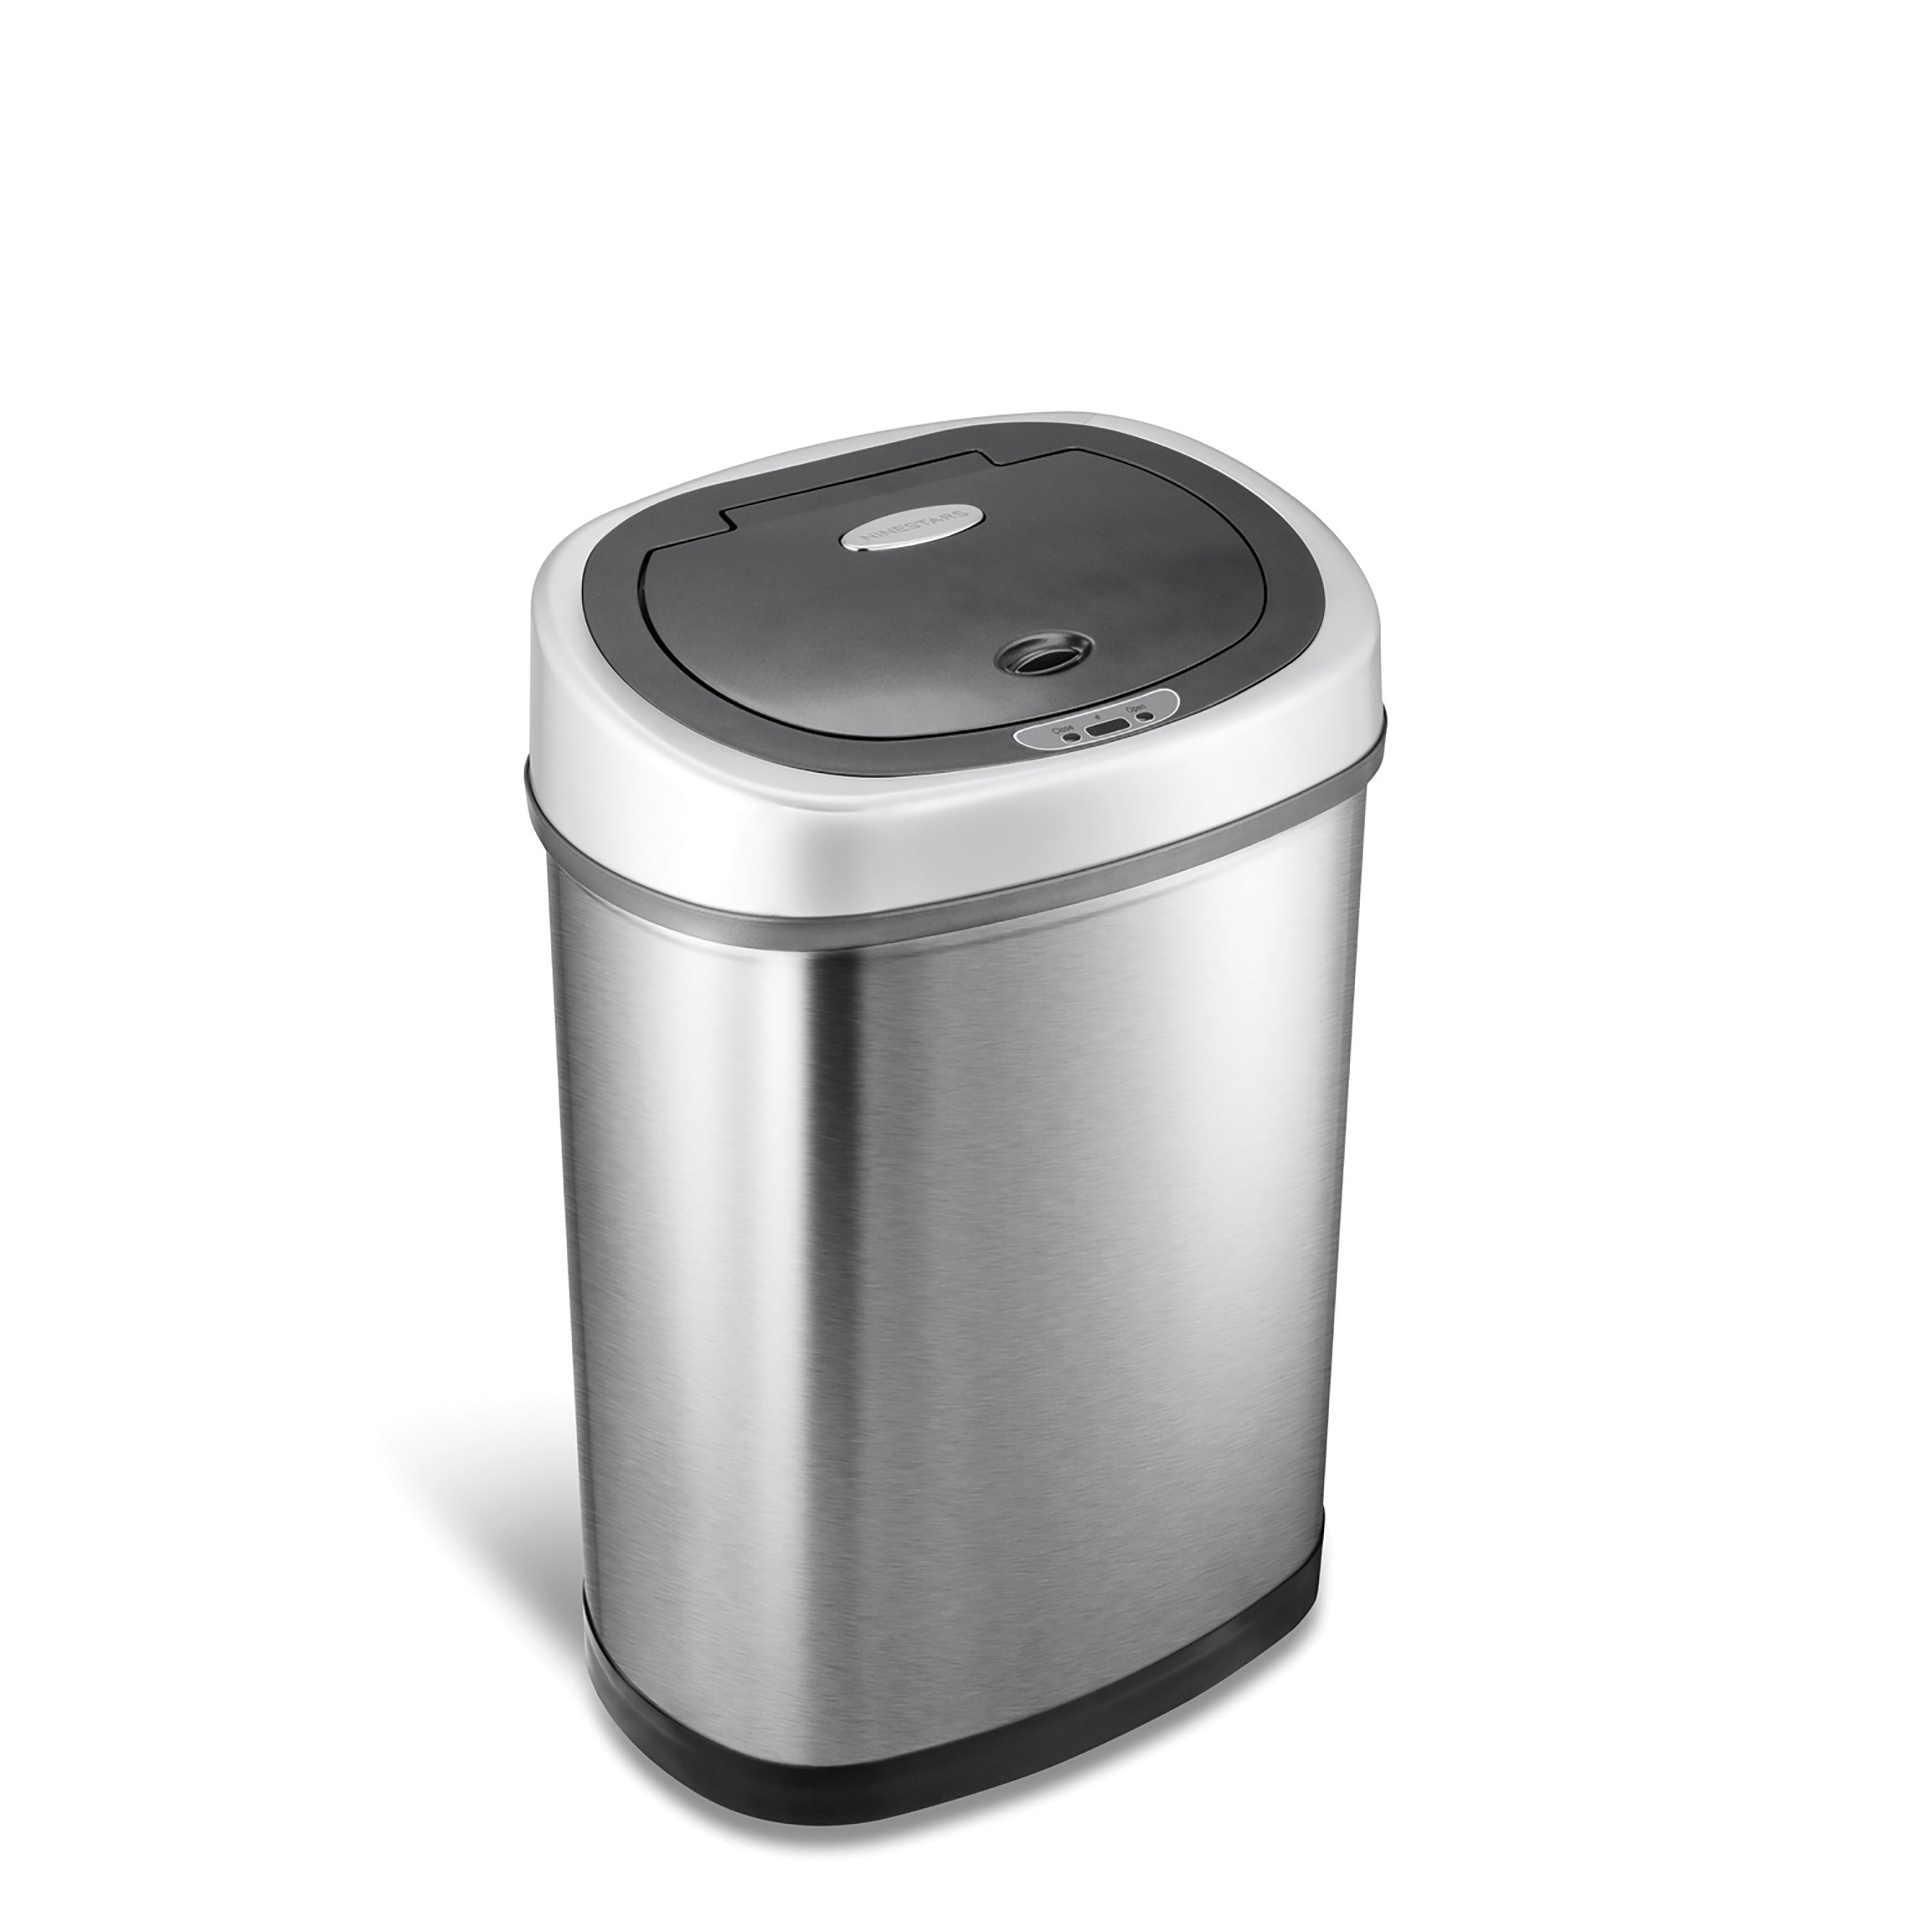 Shop Stainless Steel 11 1 Gallon Motion Sensor Trash Can Free